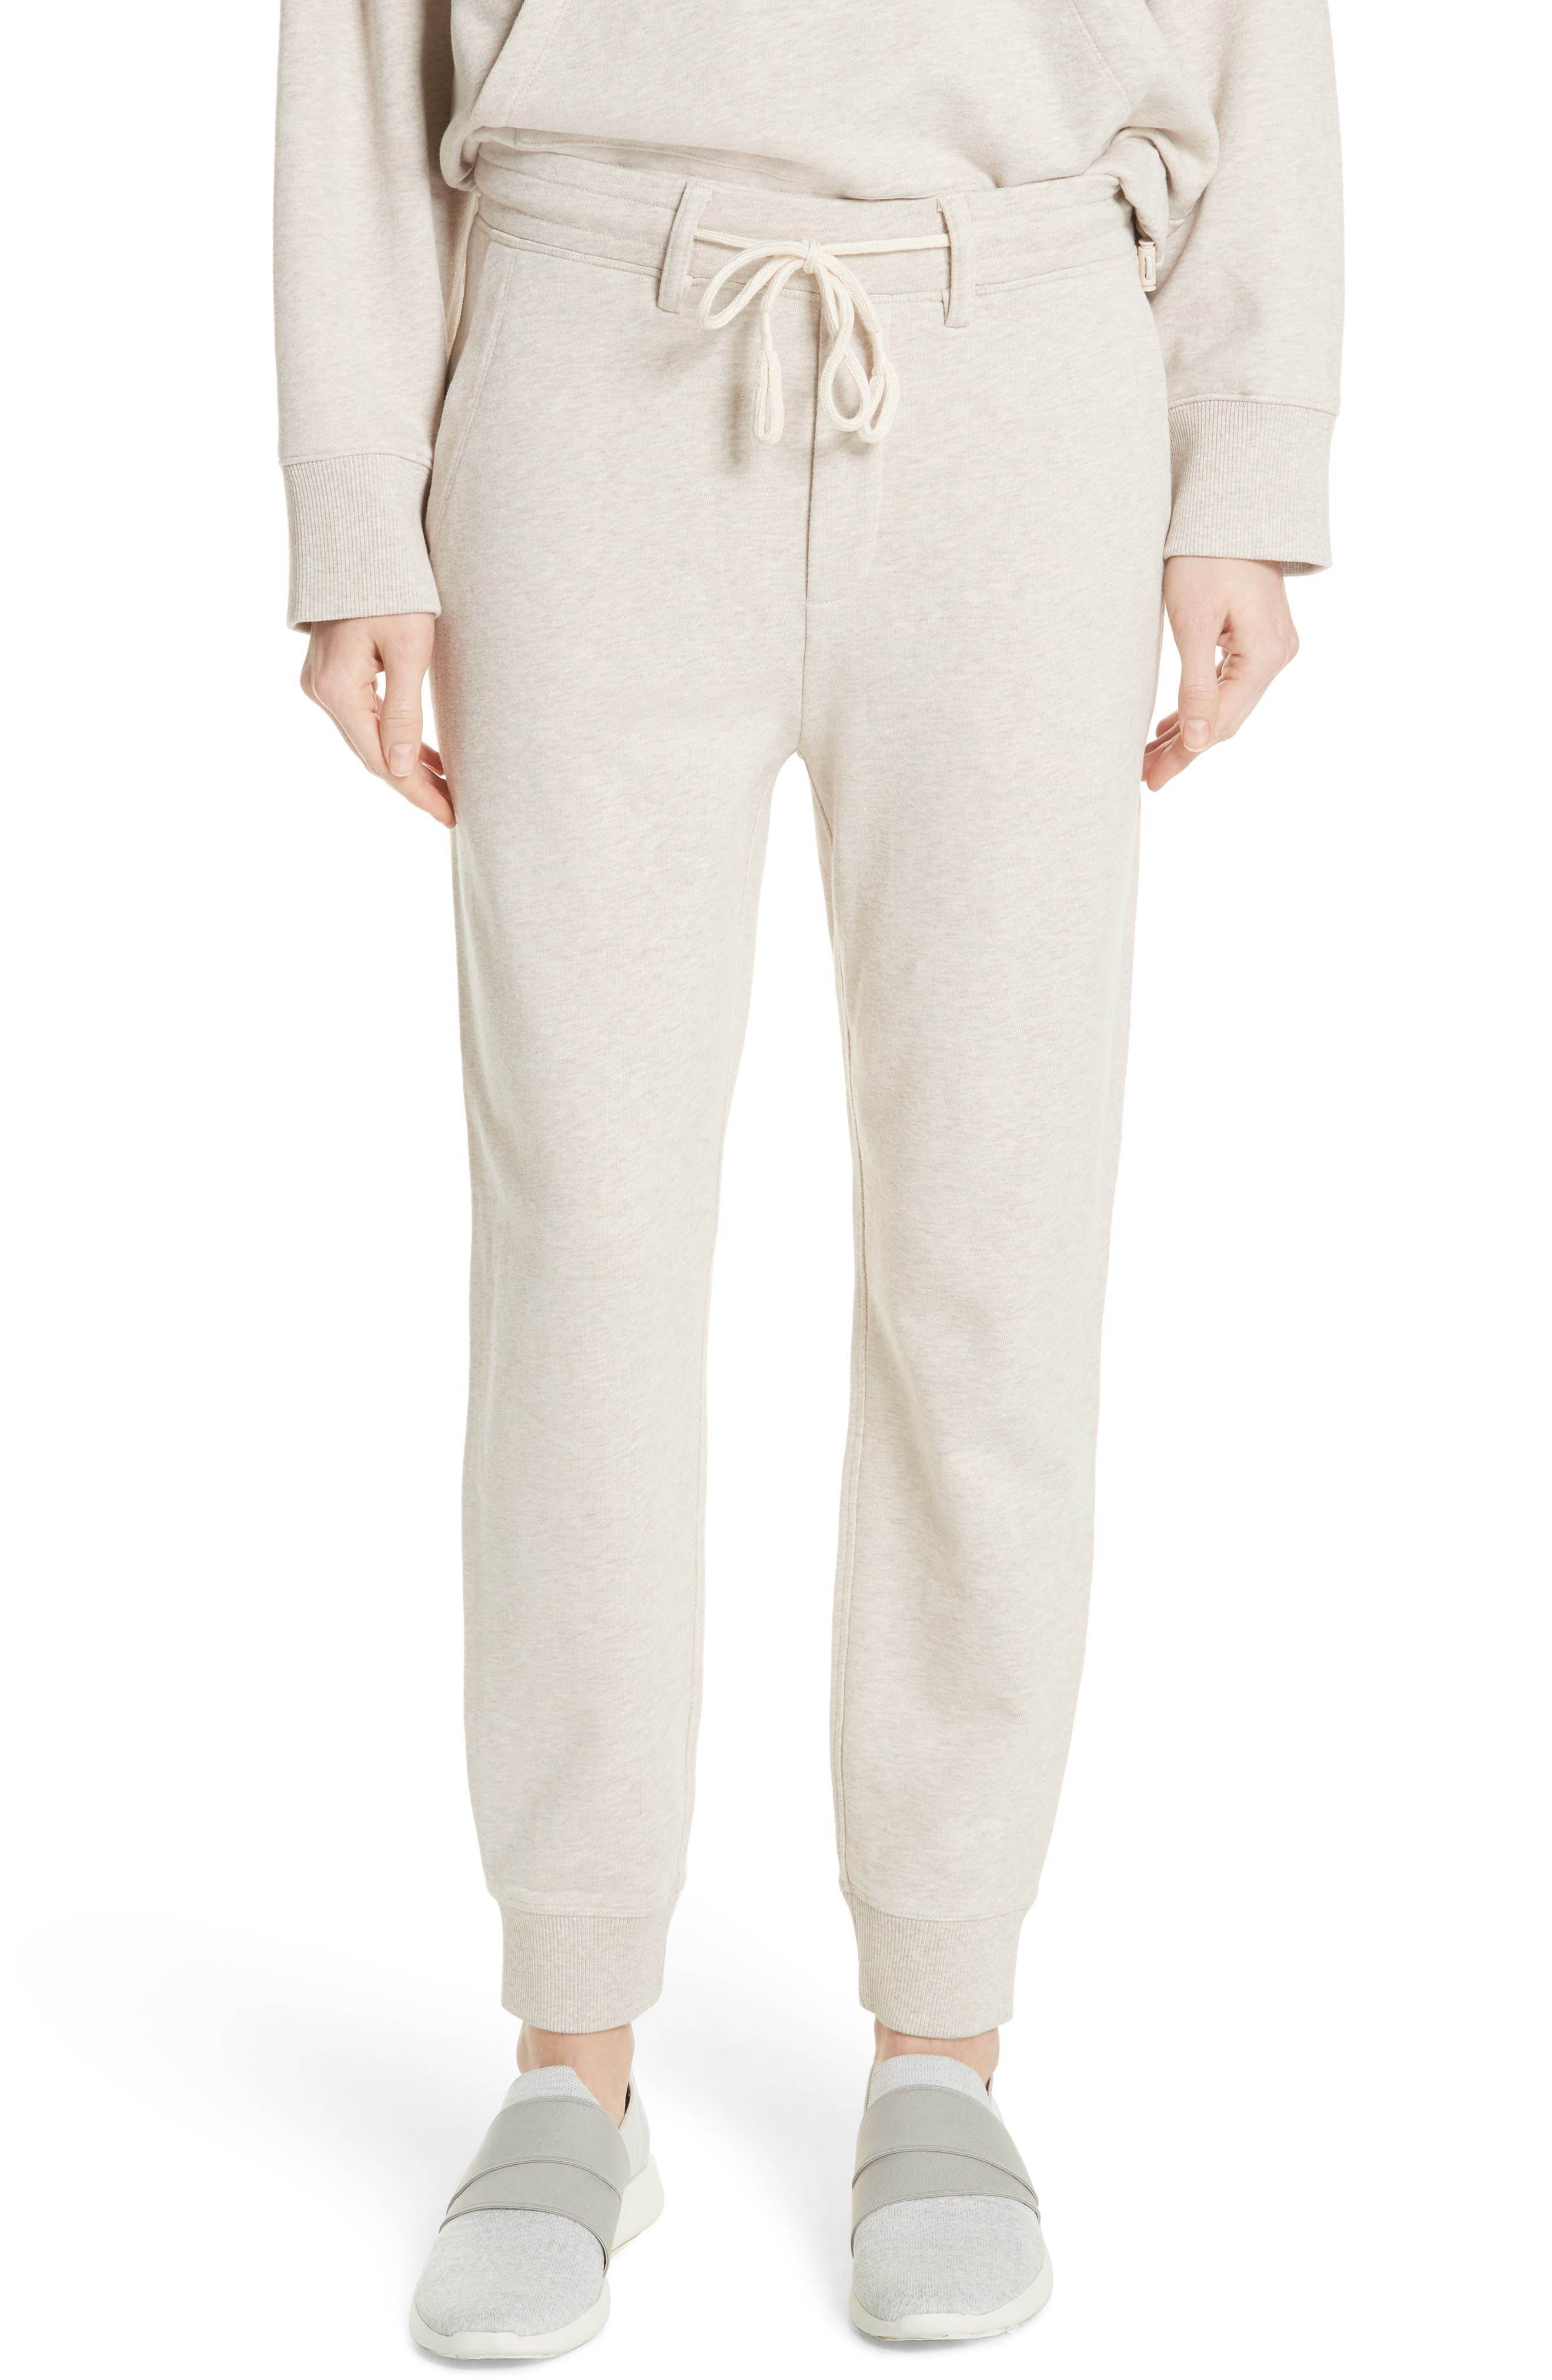 Cotton Drawstring Sweatpants,                             Main thumbnail 1, color,                             H Burlap